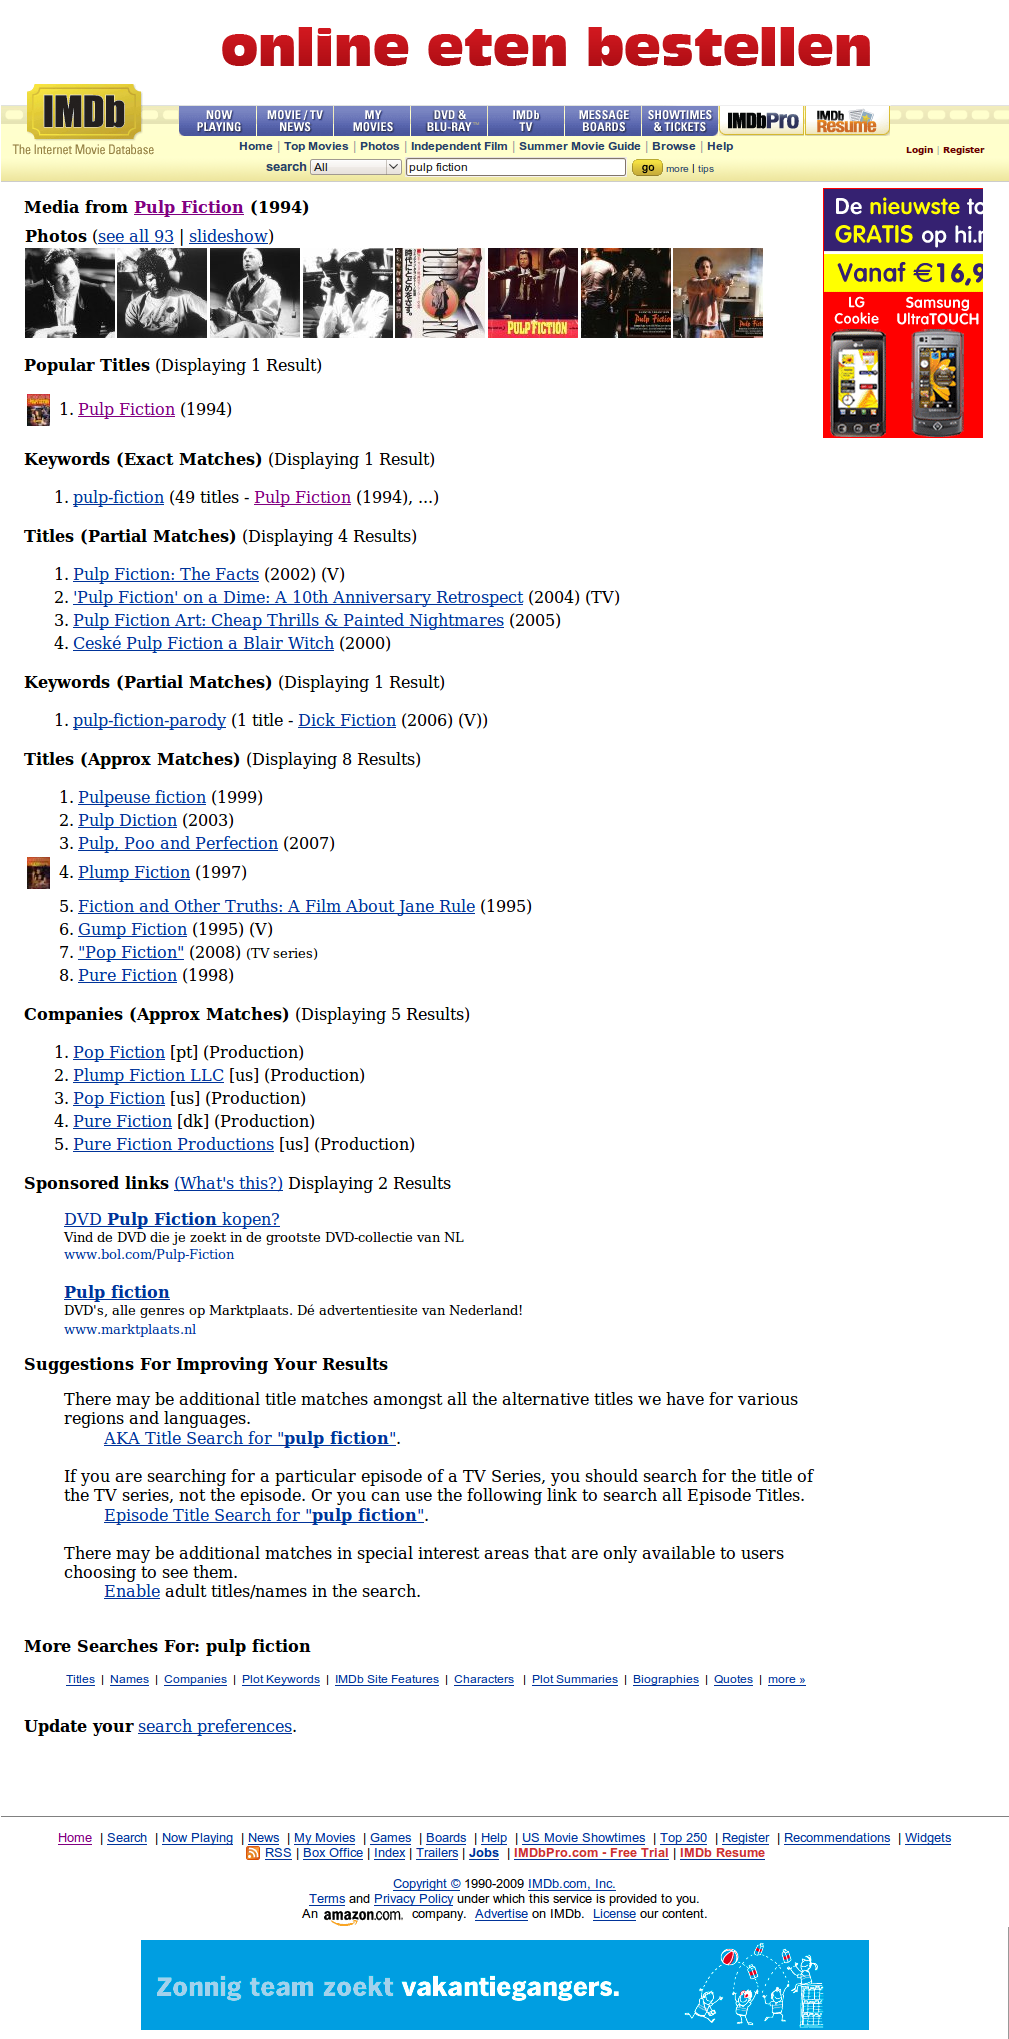 IMDB results page (click to enlarge)